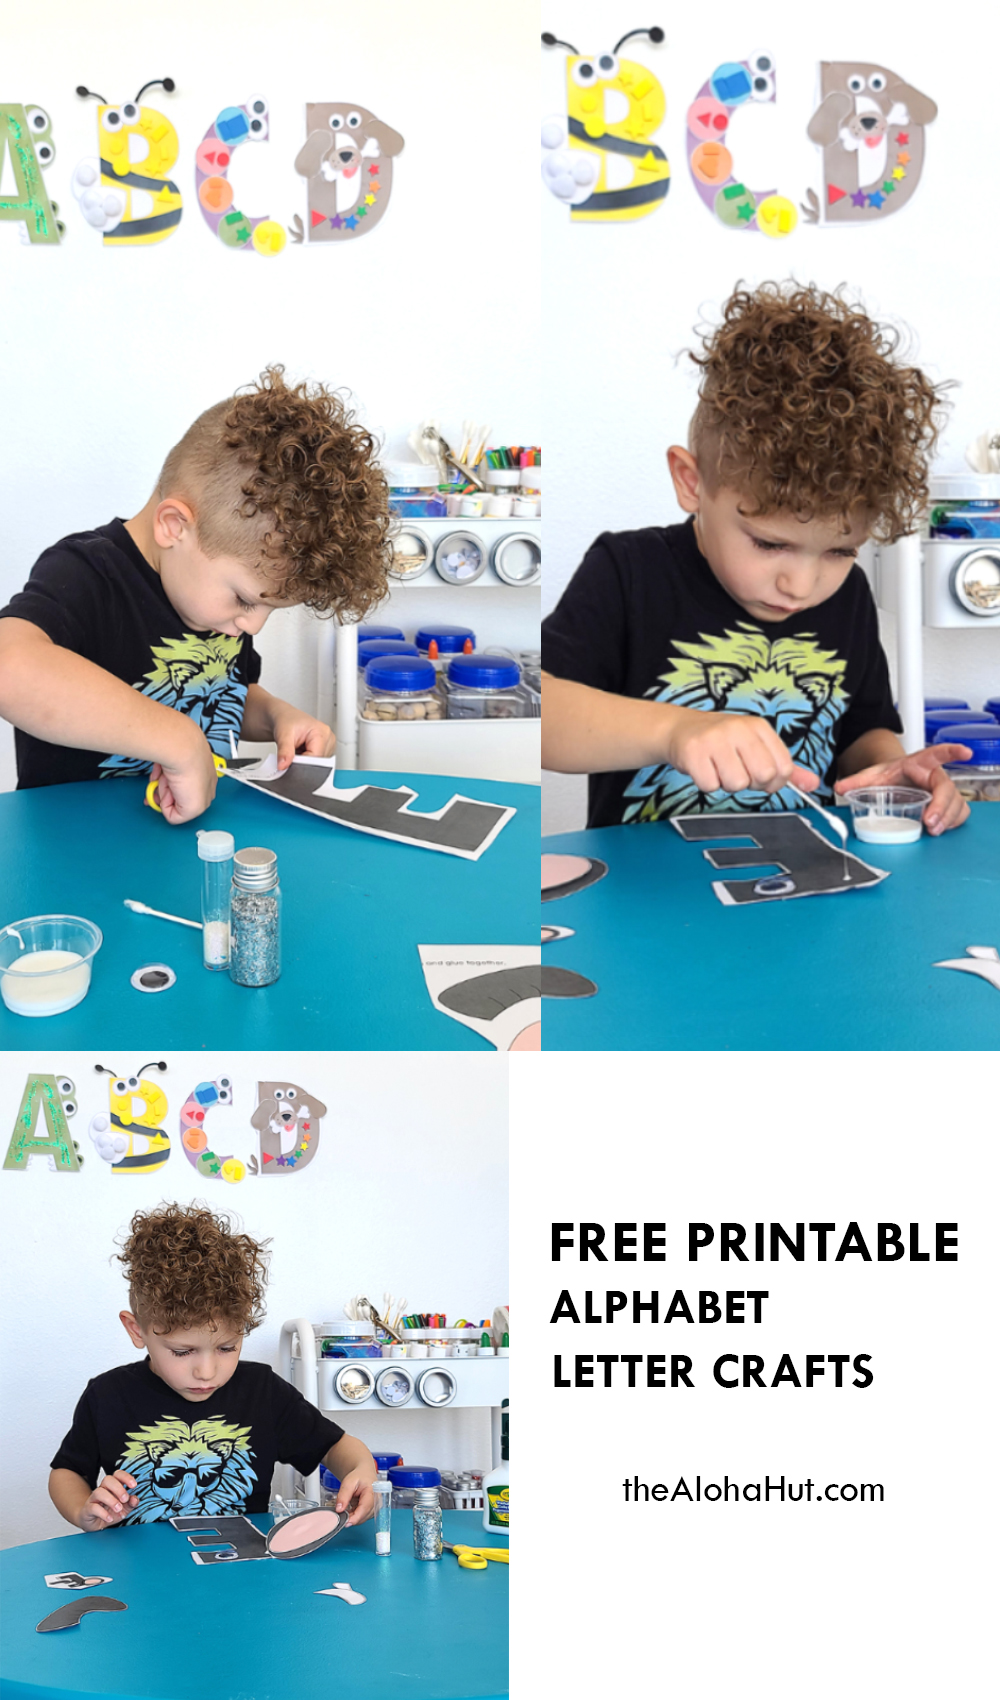 Alphabet Letter Crafts - Letter E - free printable 2 by the Aloha Hut